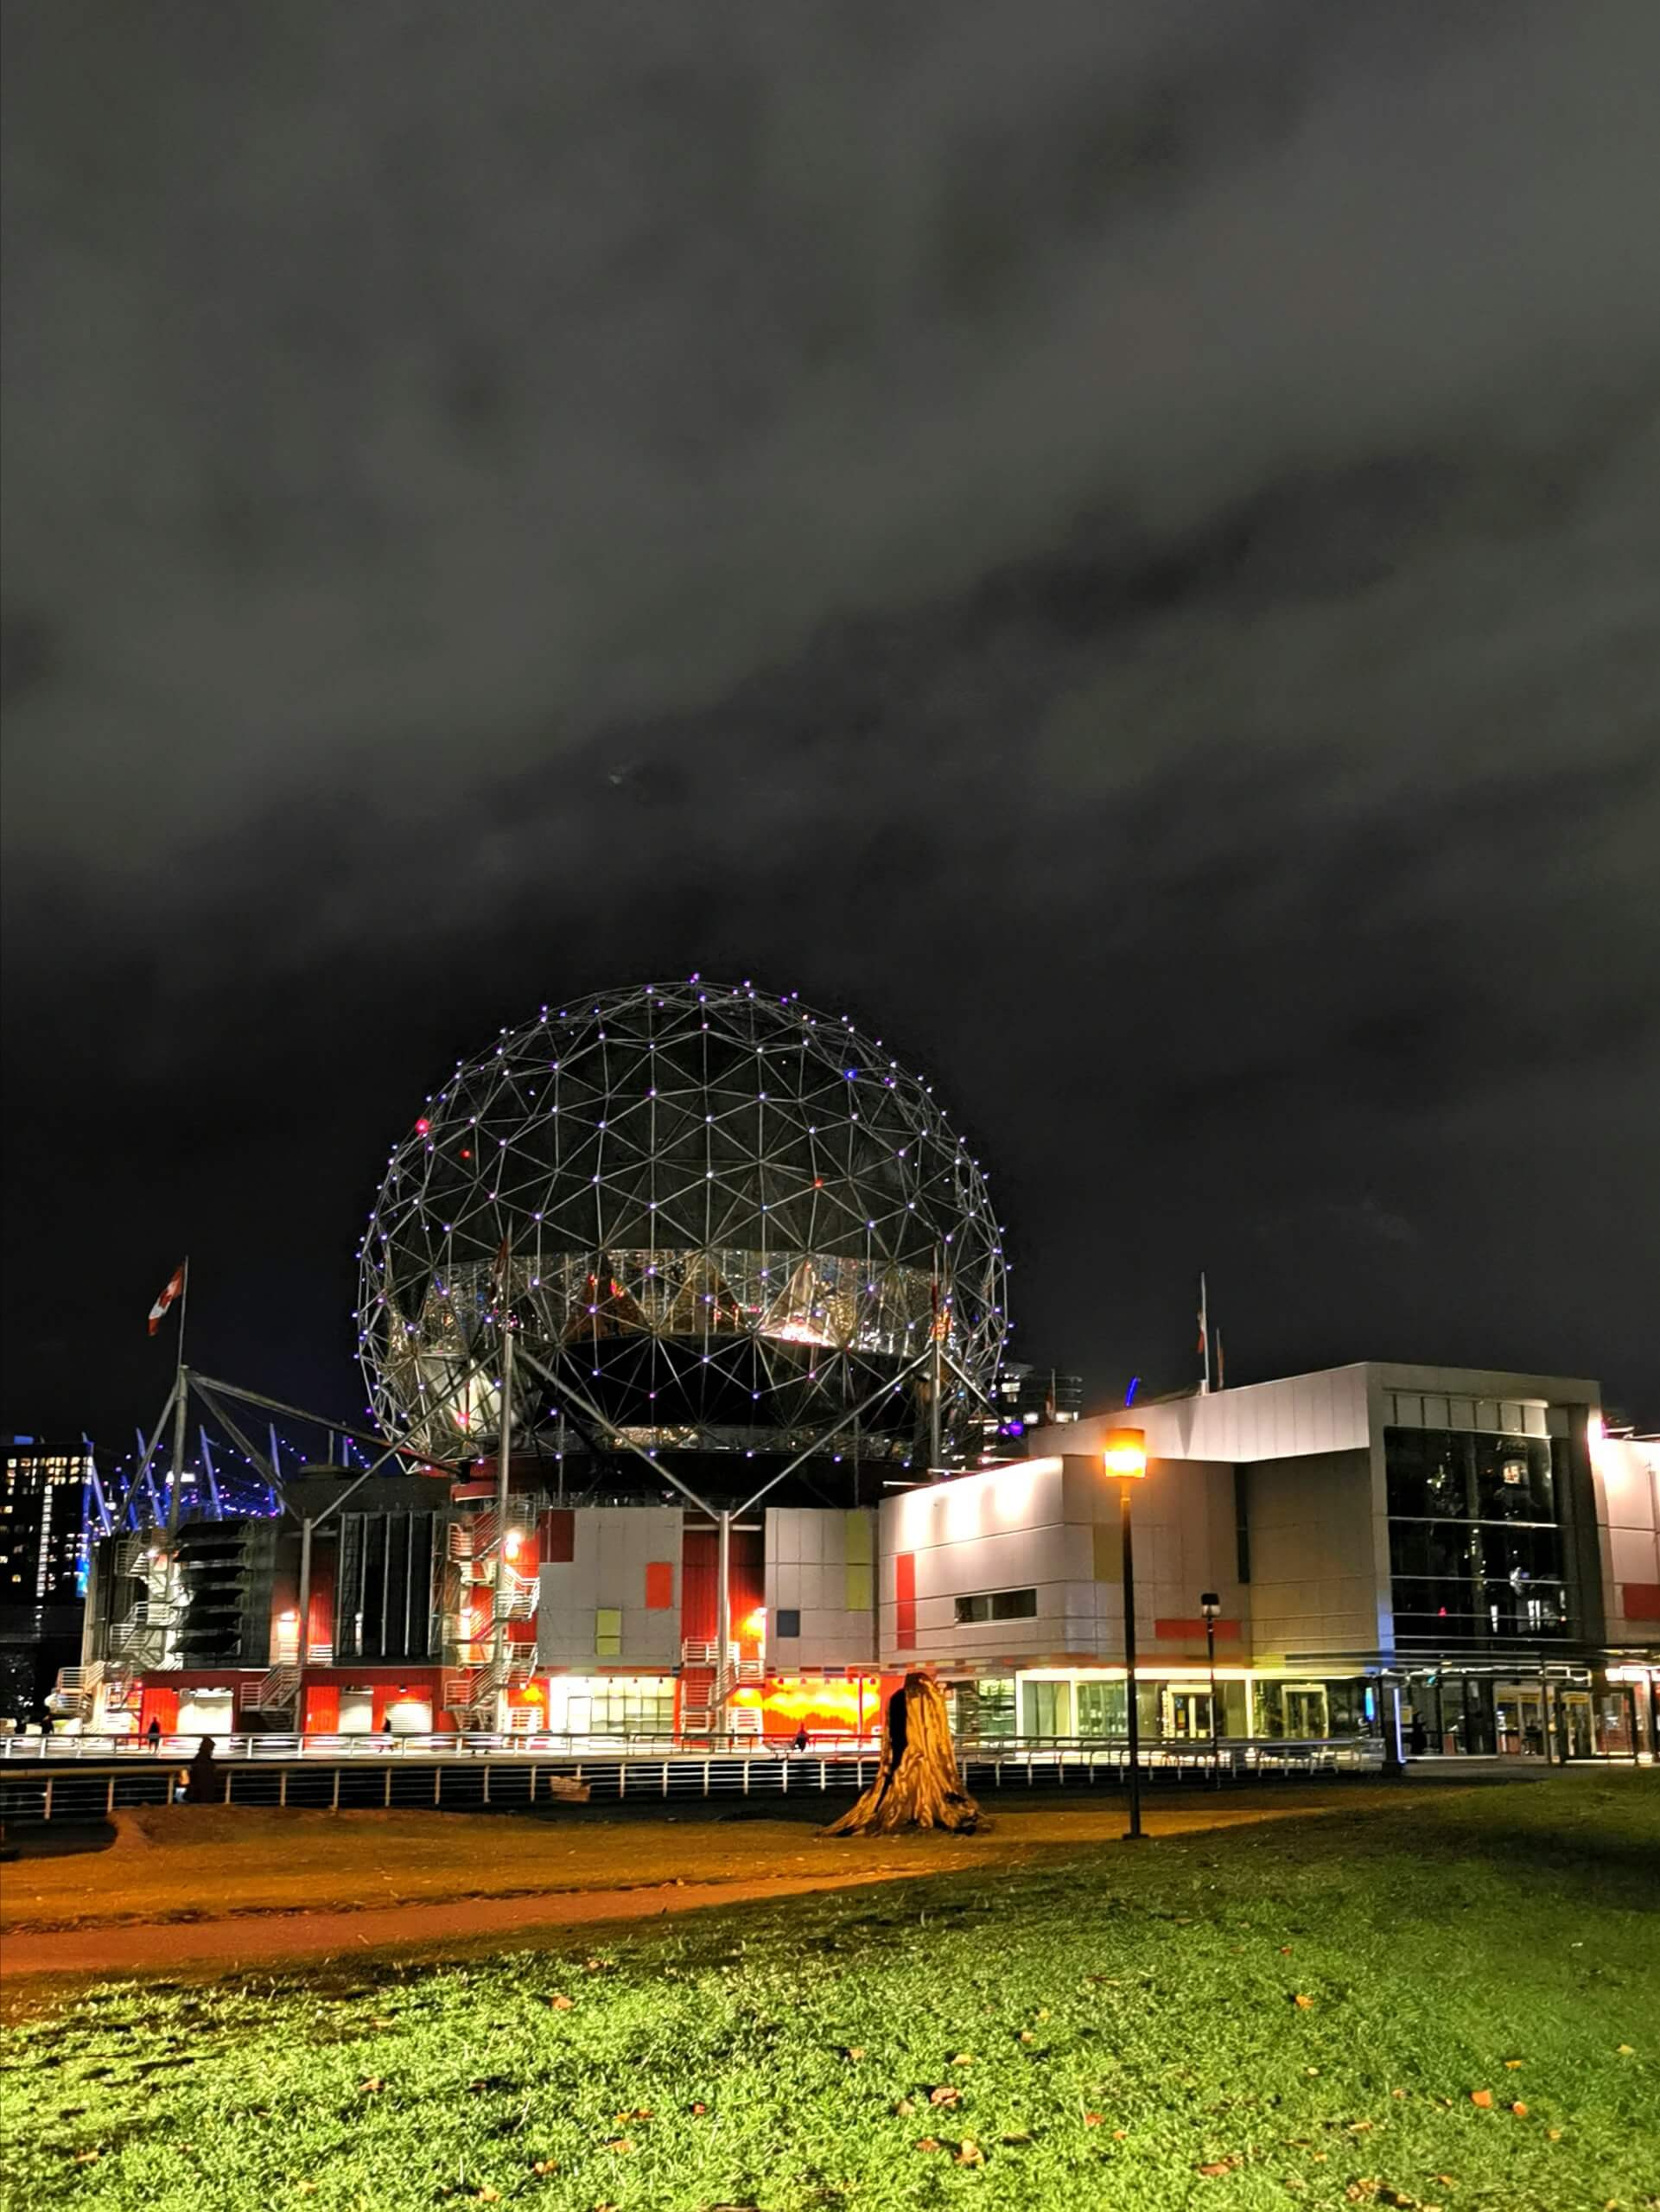 Science World lit up at night.